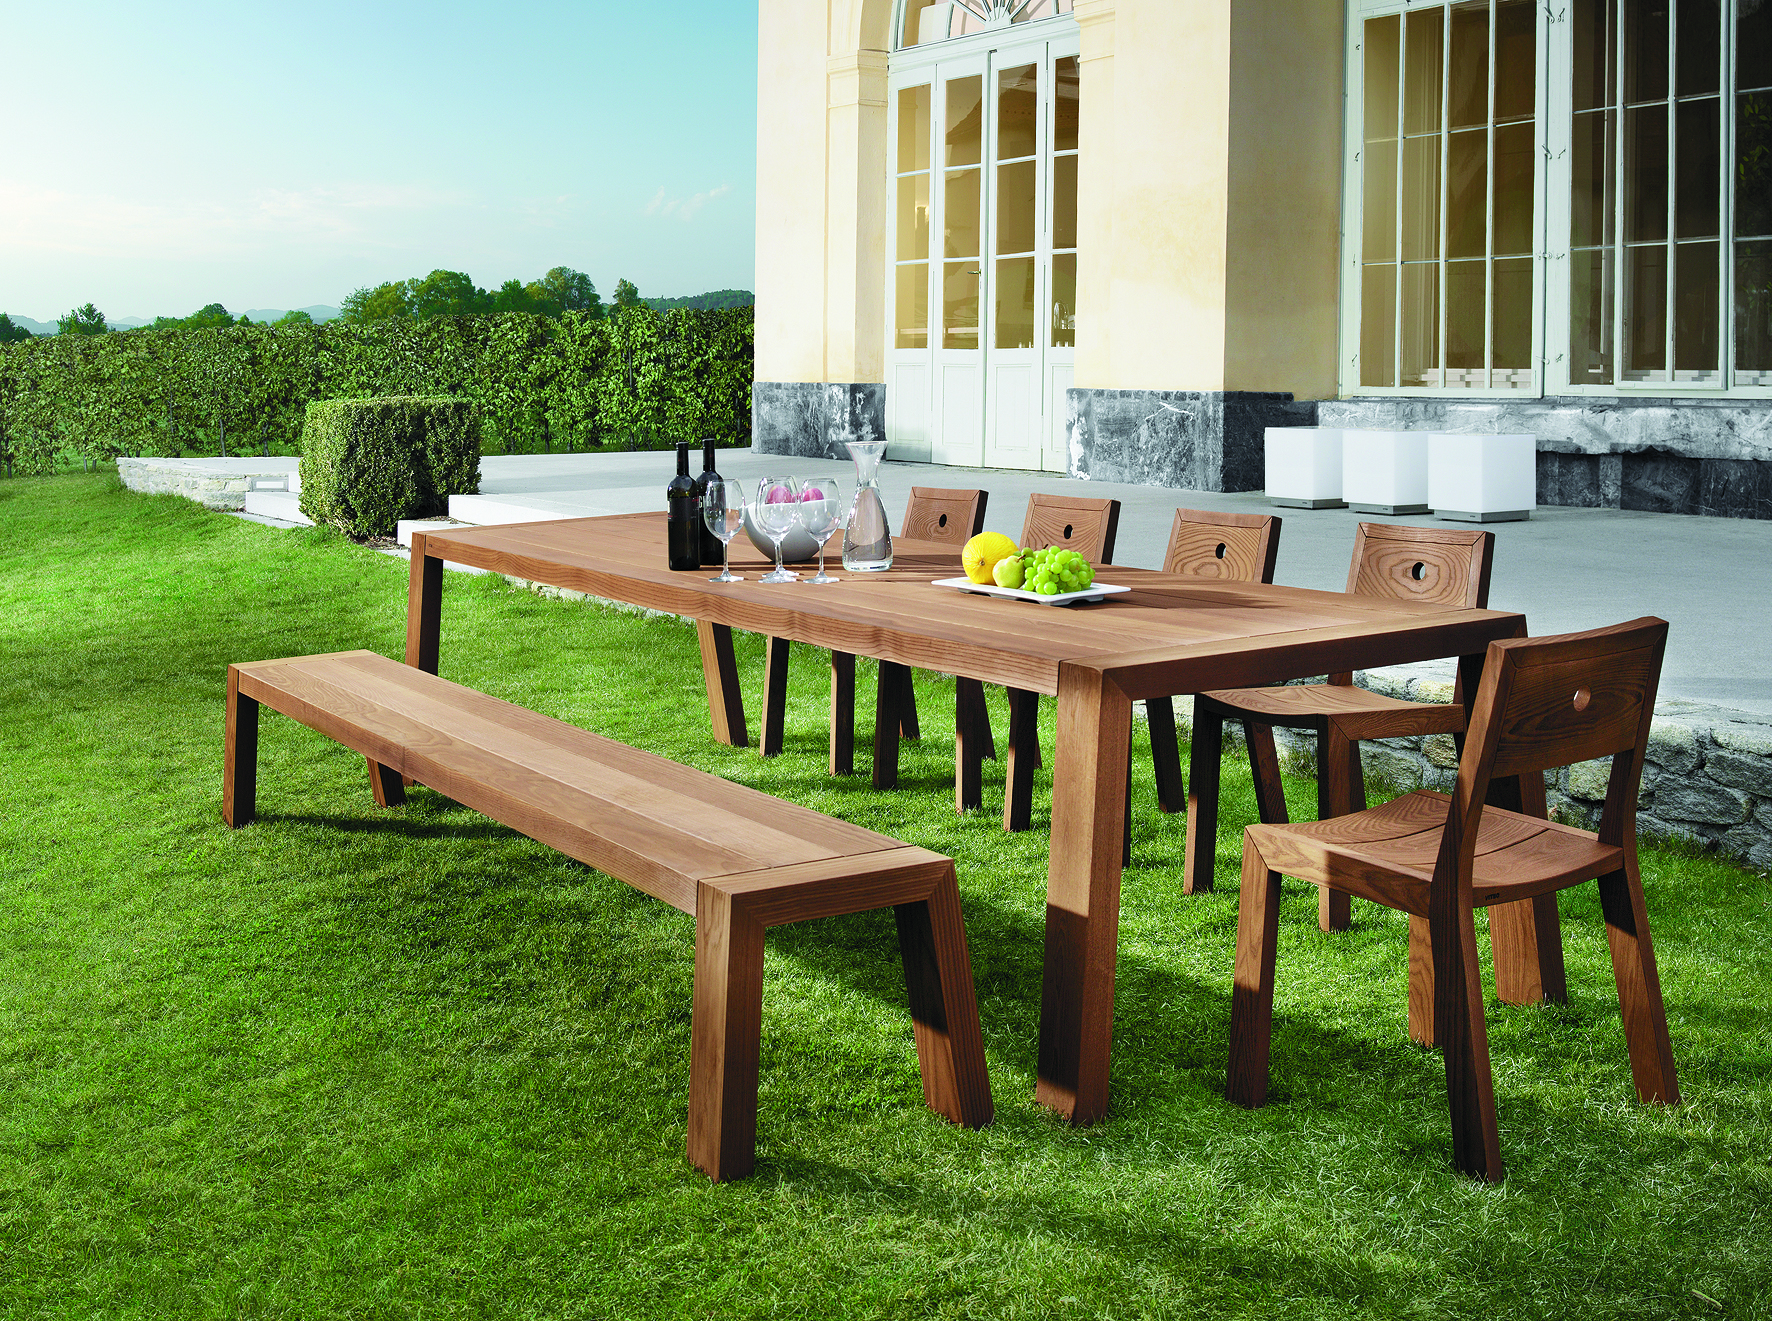 Encompass furniture new products spring 2010 modern for Designer outdoor furniture